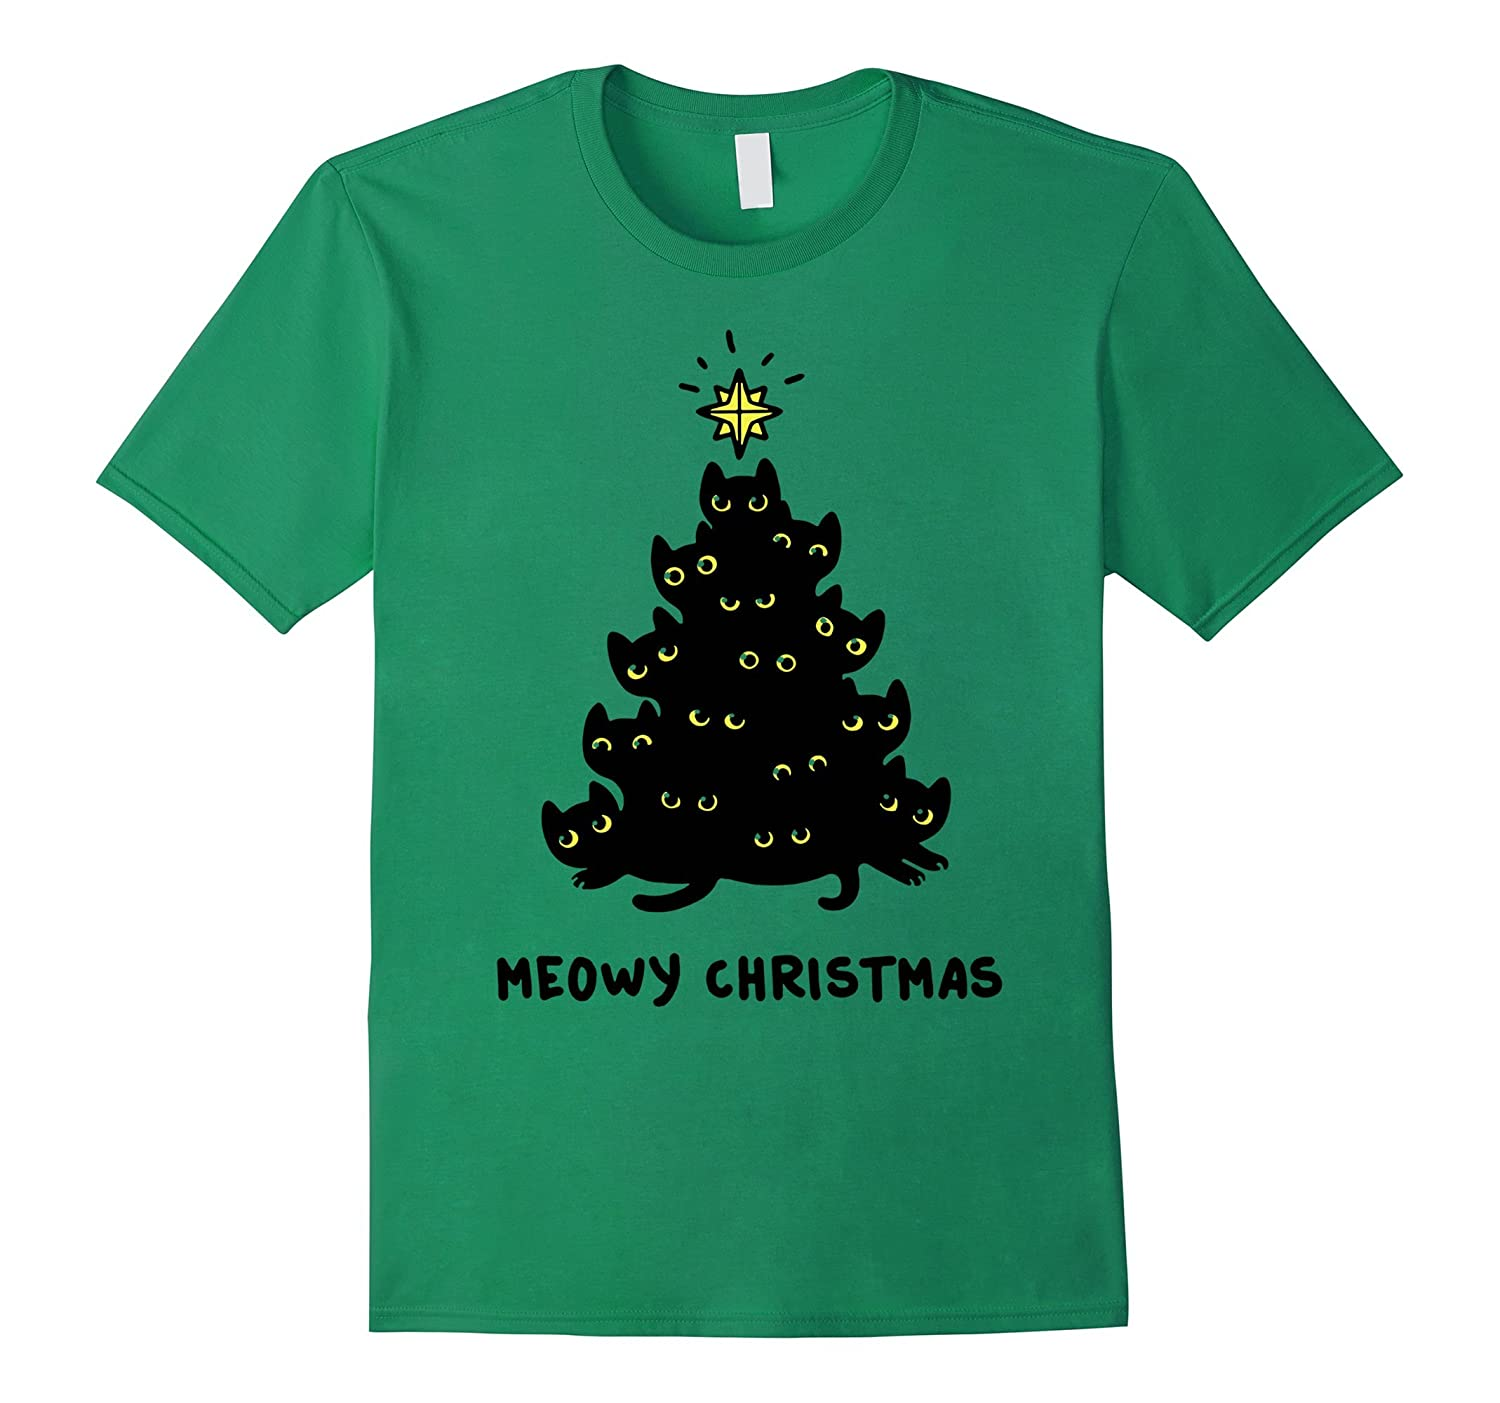 Kitten Tree Christmas T shirt Meowy Christmas tee - Goatstee